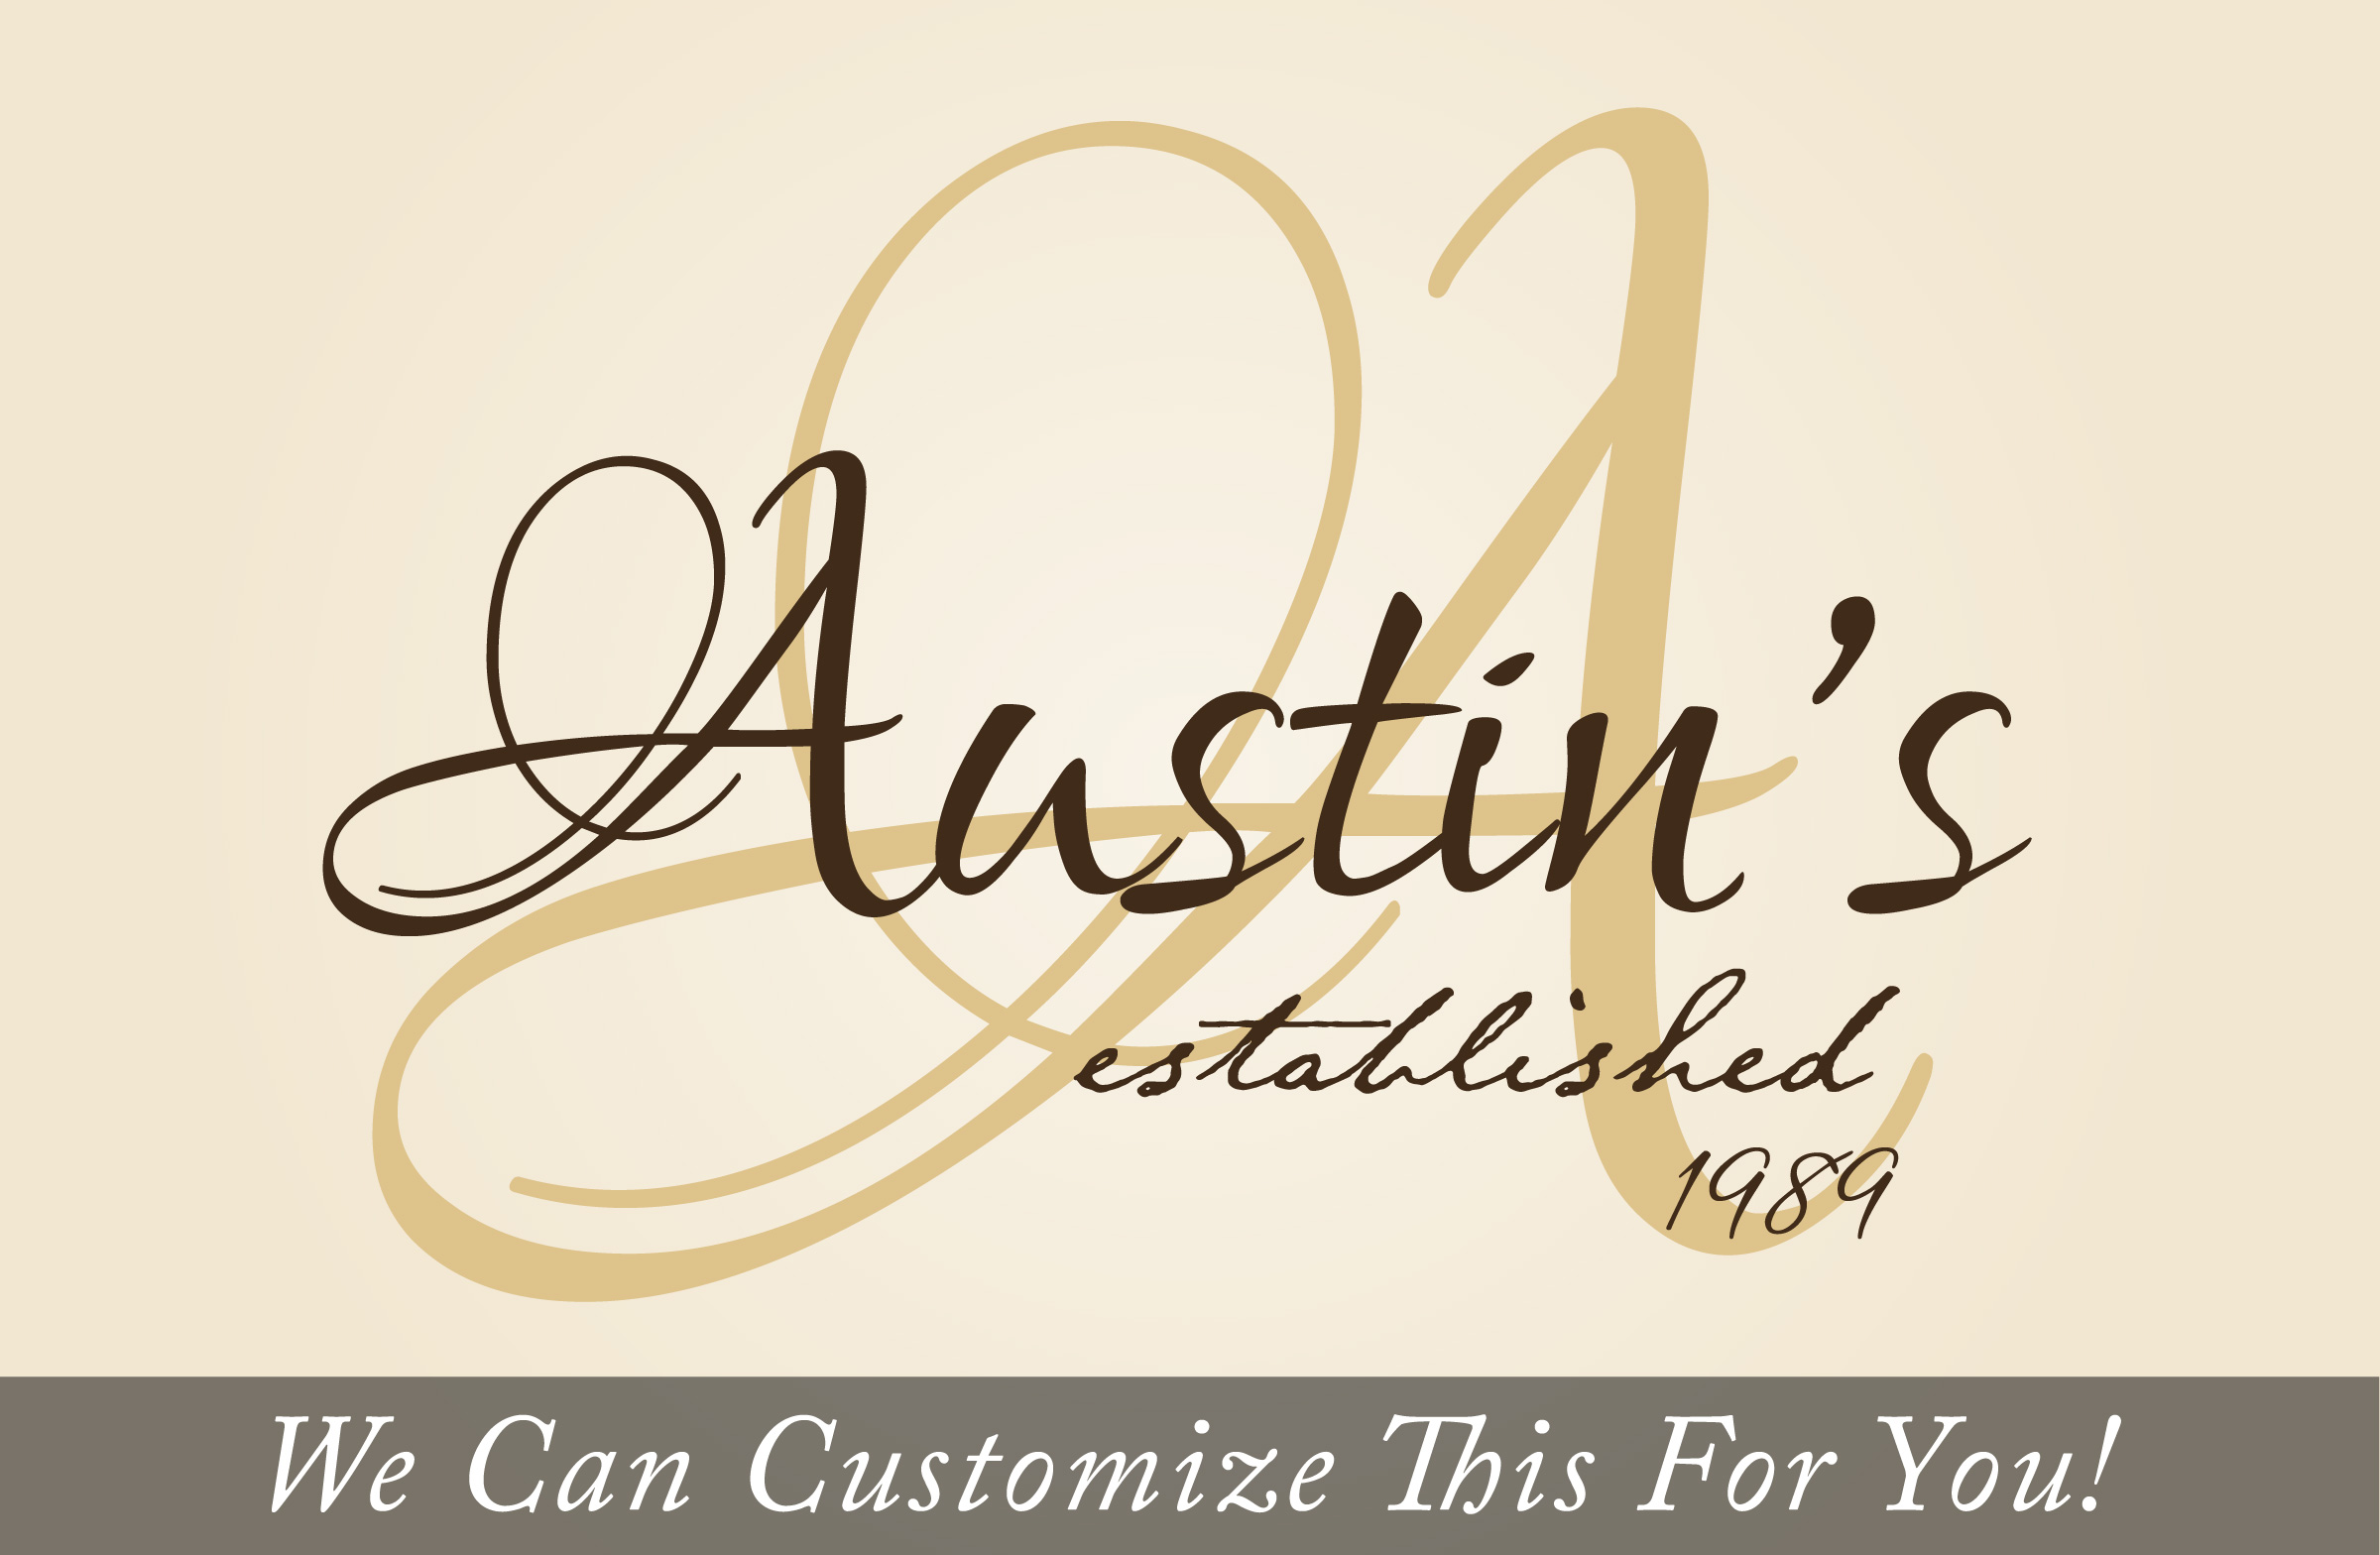 Family Name Custom Personalize With Fancy Flourishes And Text A - Custom wall vinyl lettering